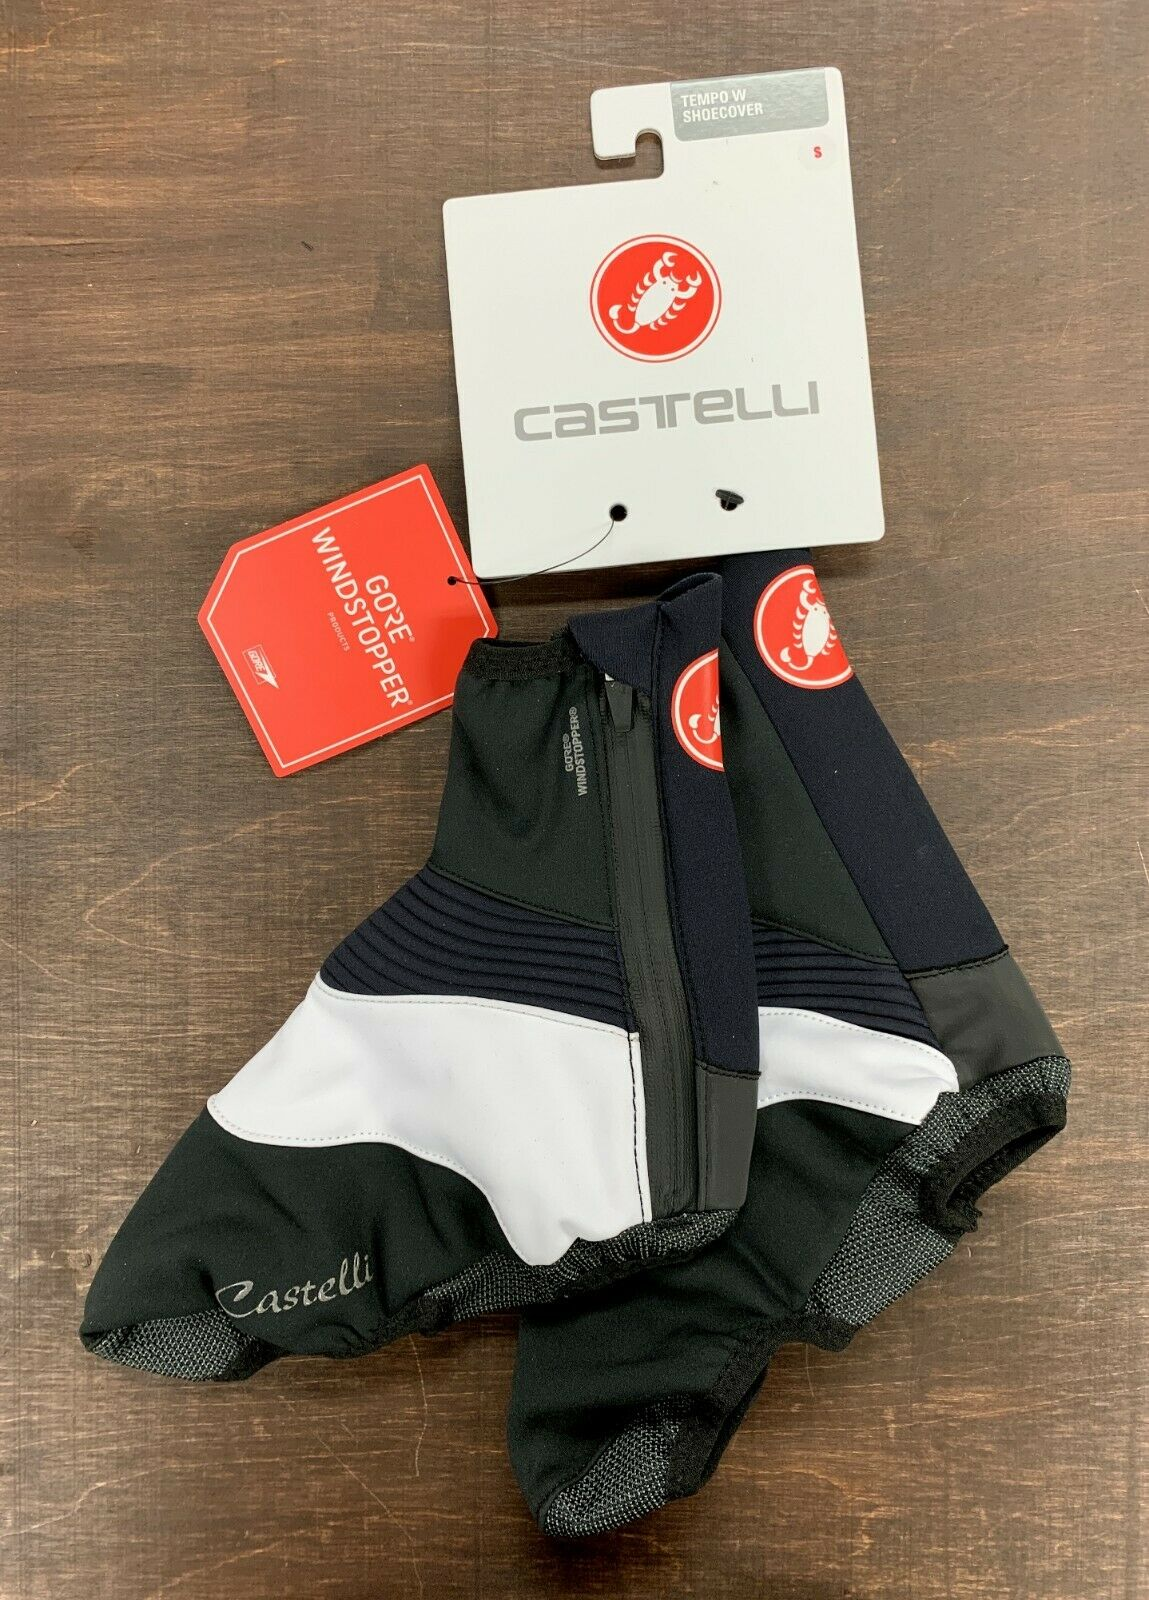 Castelli Tempo Women's shoes Cover Size Small New